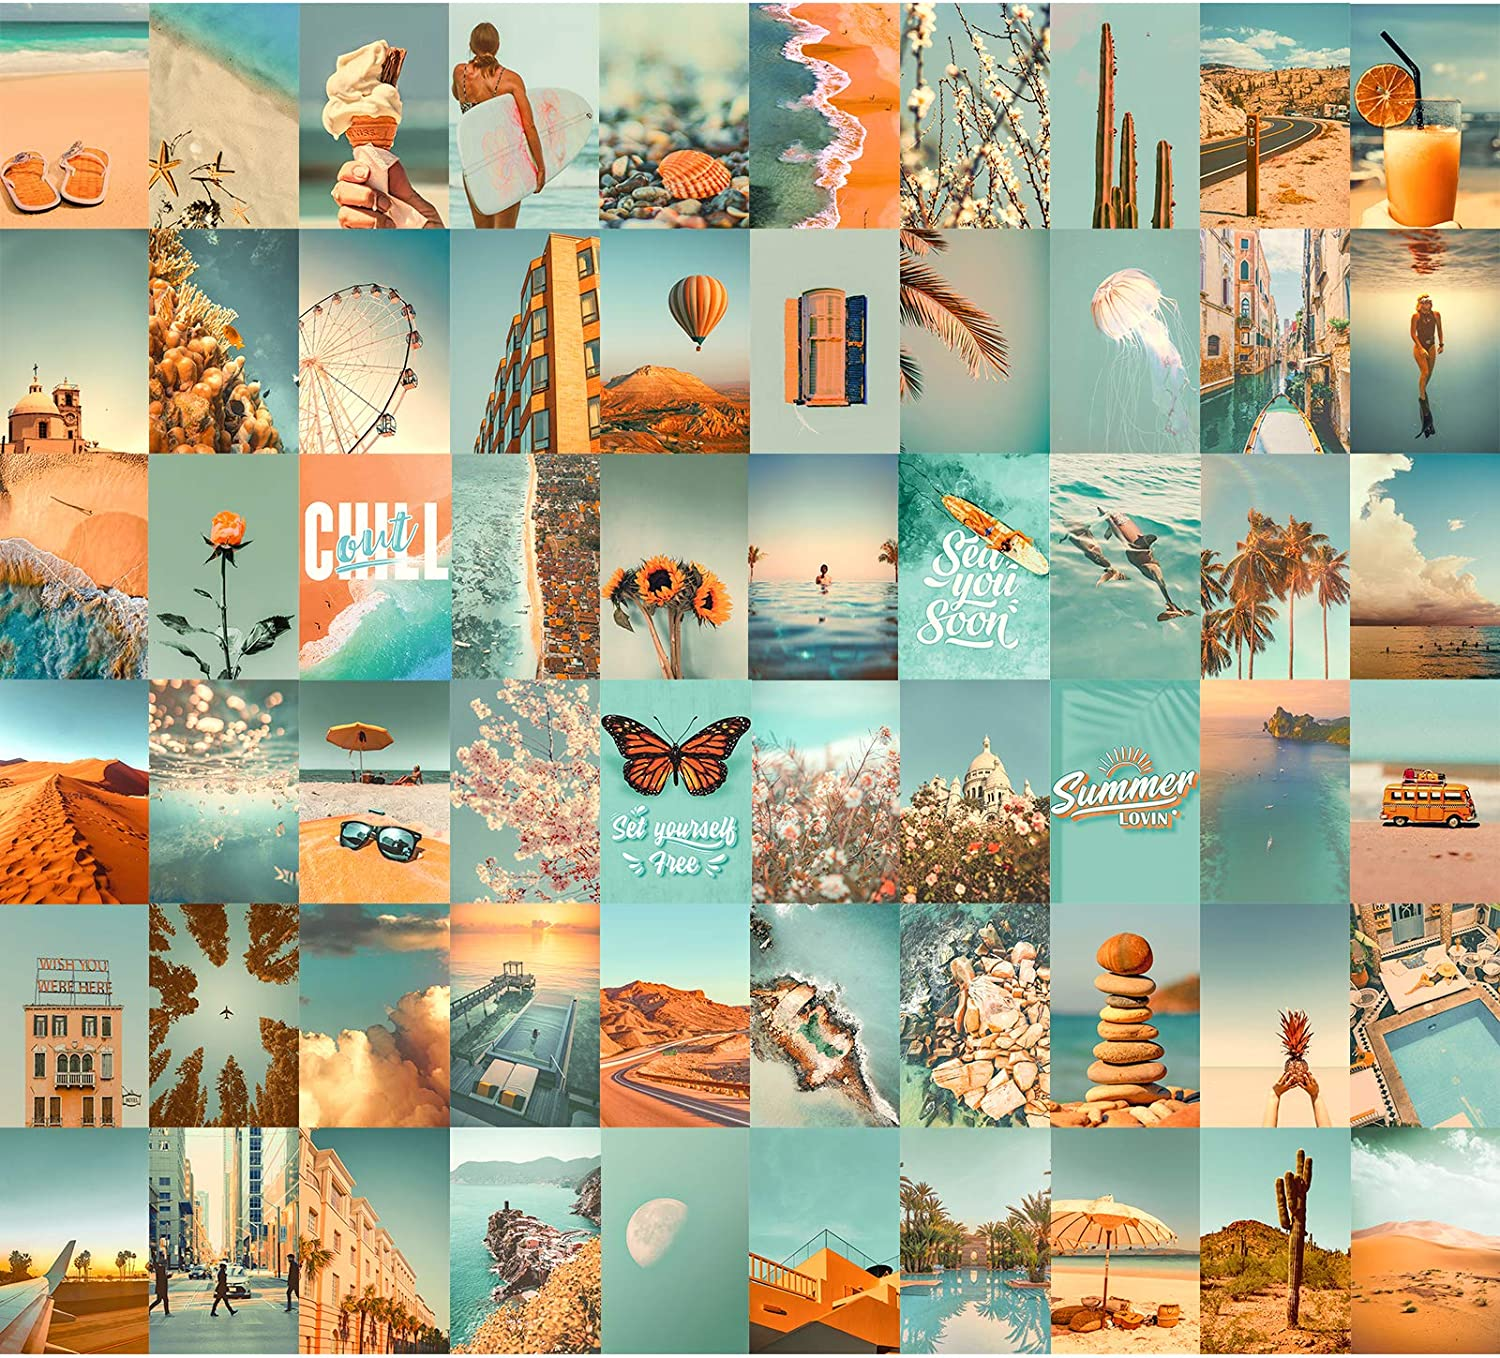 Wall Collage Kit 60 PICS Aesthetic Pictures by Aesthetic Atmosphere, 4×6 inch Teal Blue Photo, Bedroom Decor for Teen Girls Room, Trendy Art VSCO Prints for Dorm Decorations, Cute Posters